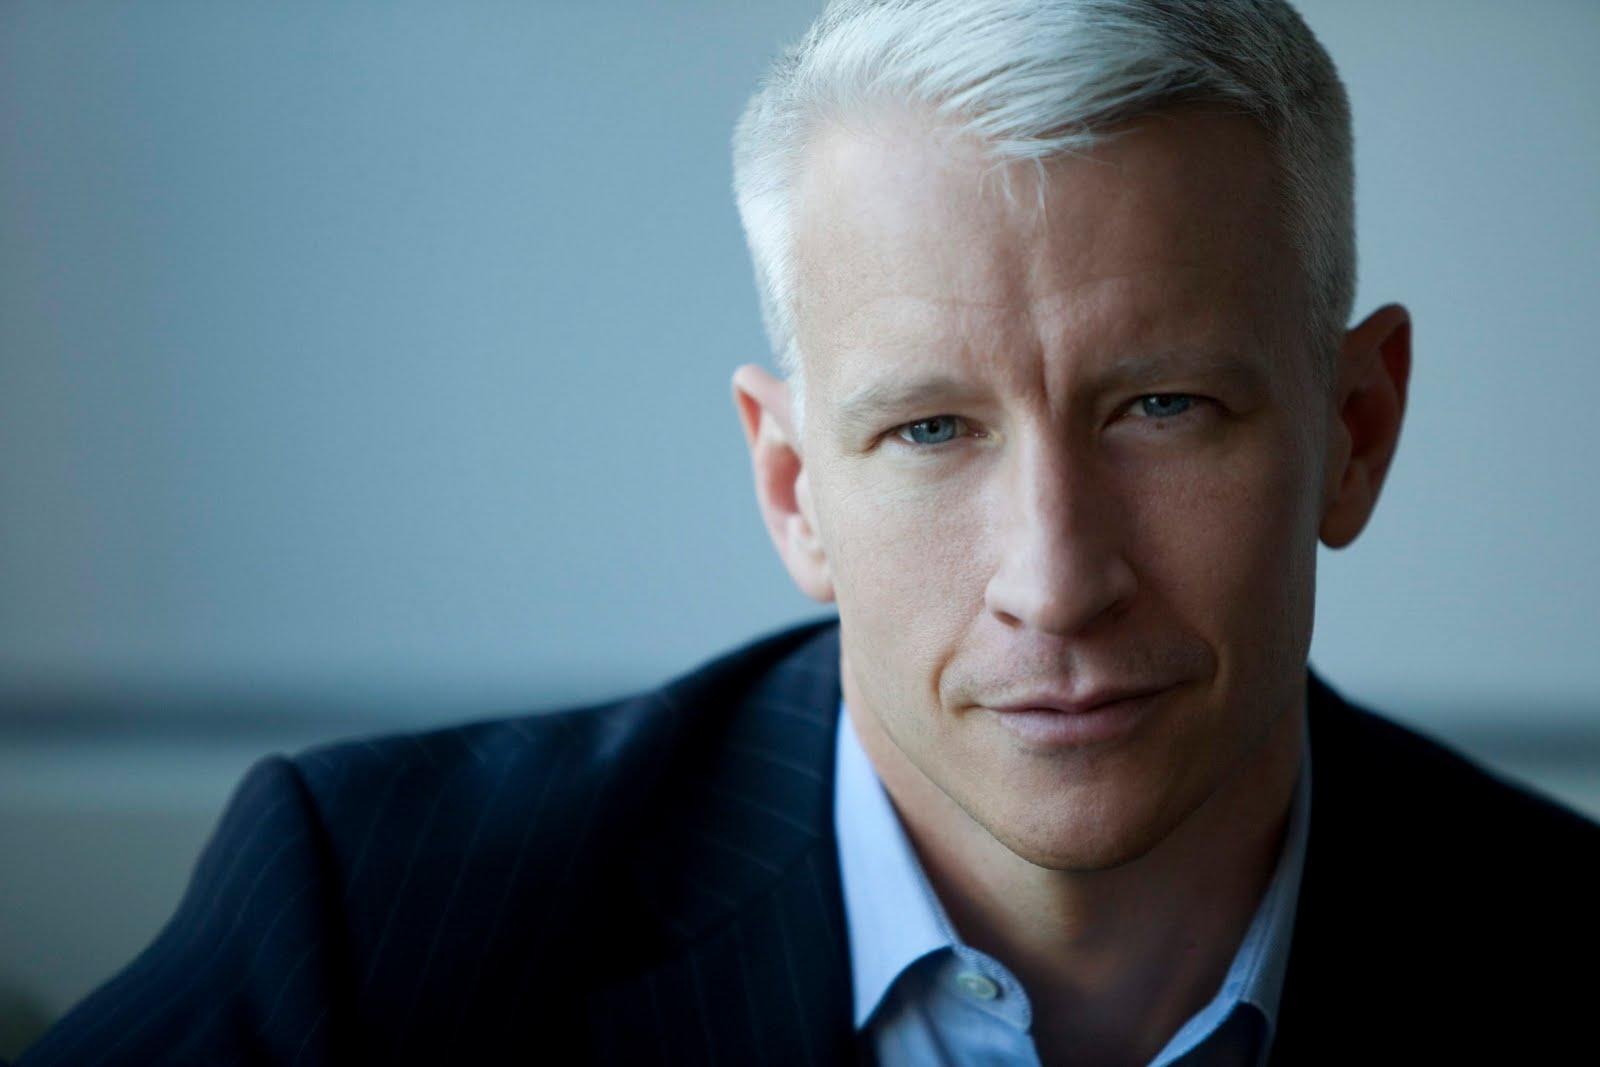 Anderson Cooper To Moderate Back To Back South Carolina GOP Town Halls